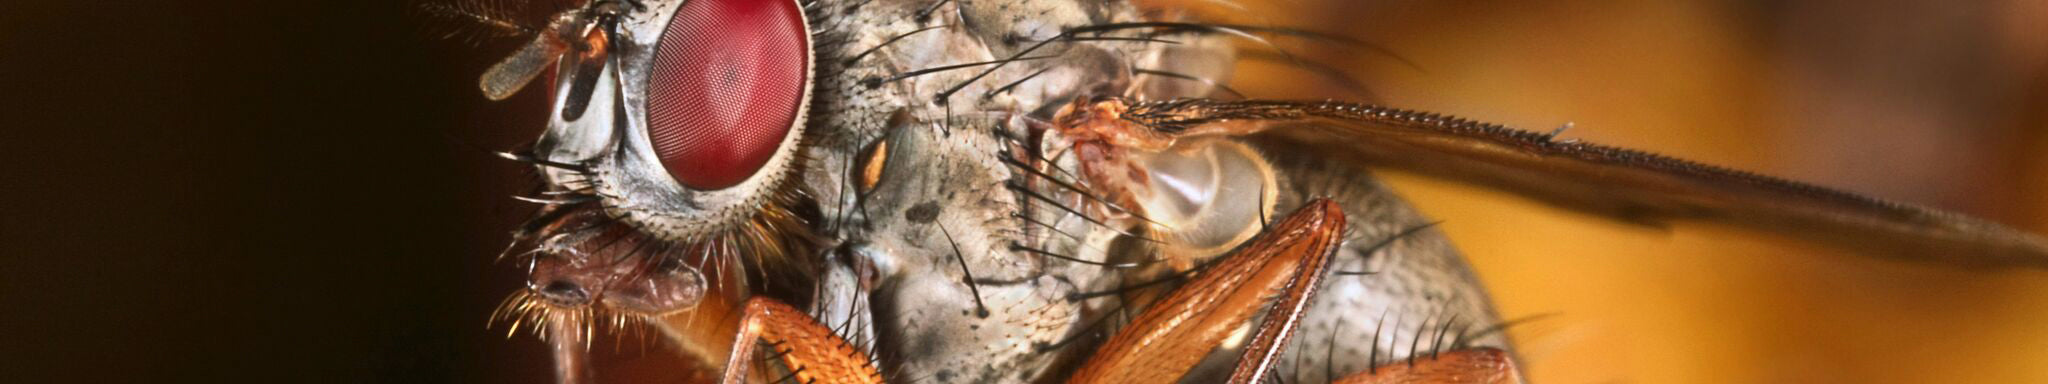 Insect Shield helps prevent diseases transmitted by flies.